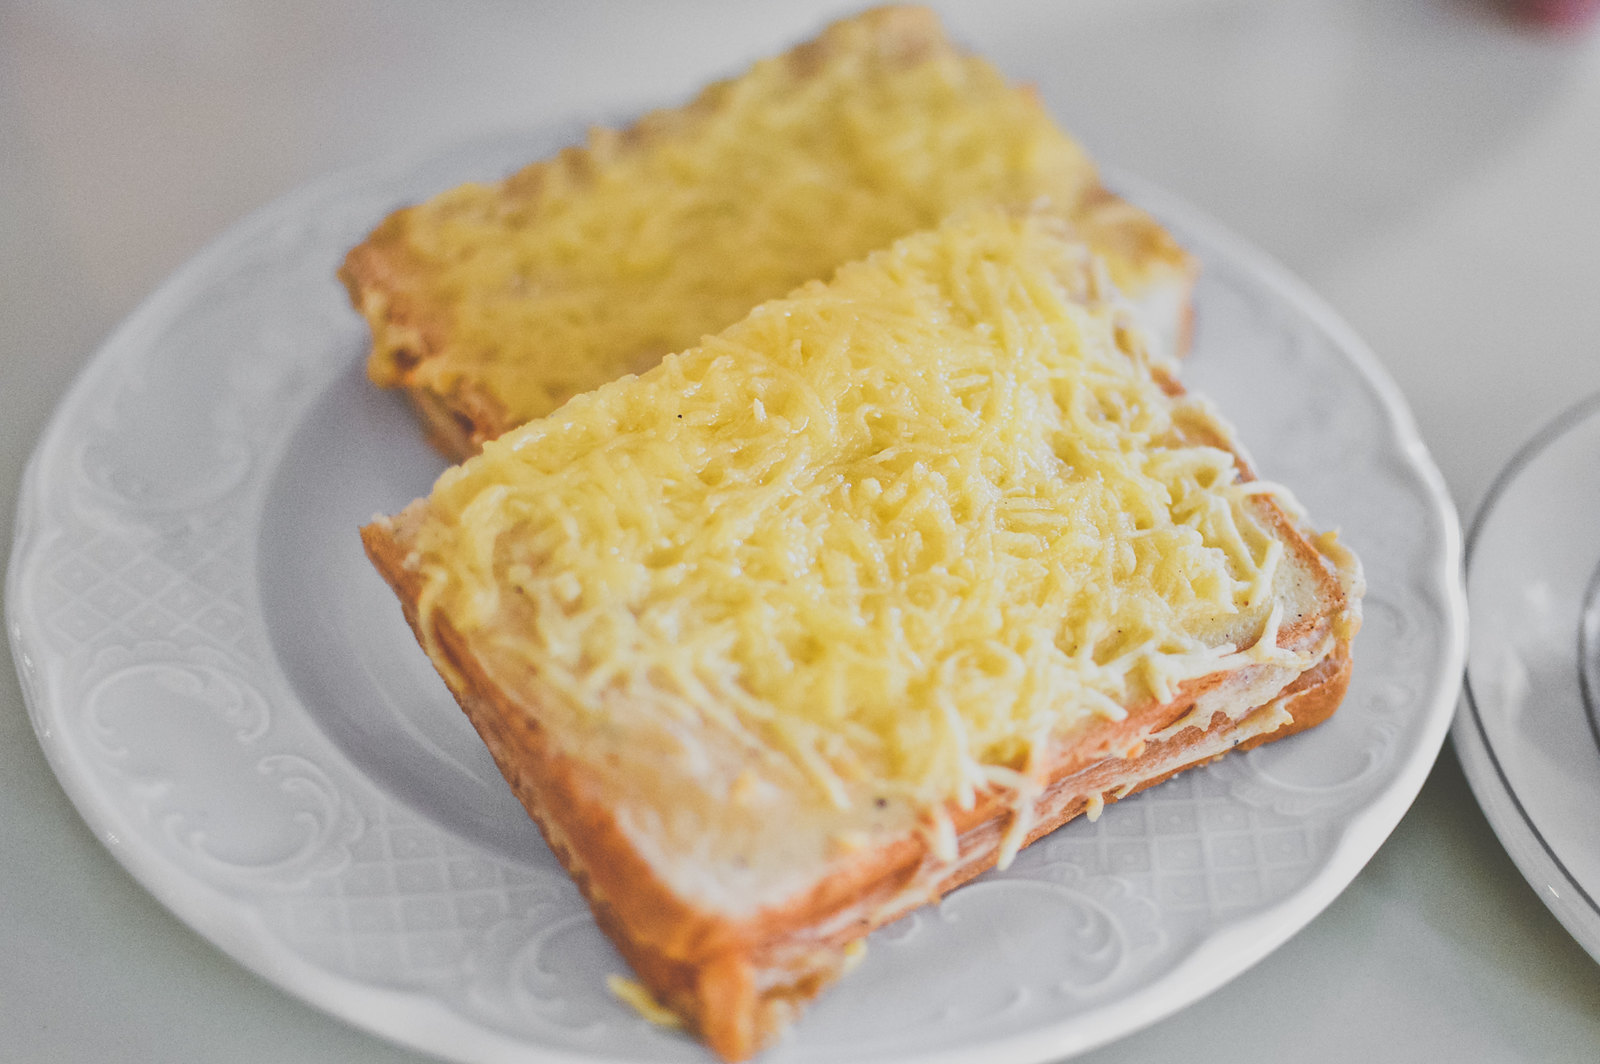 Tiong Bahru Bakery Croque Monsieur